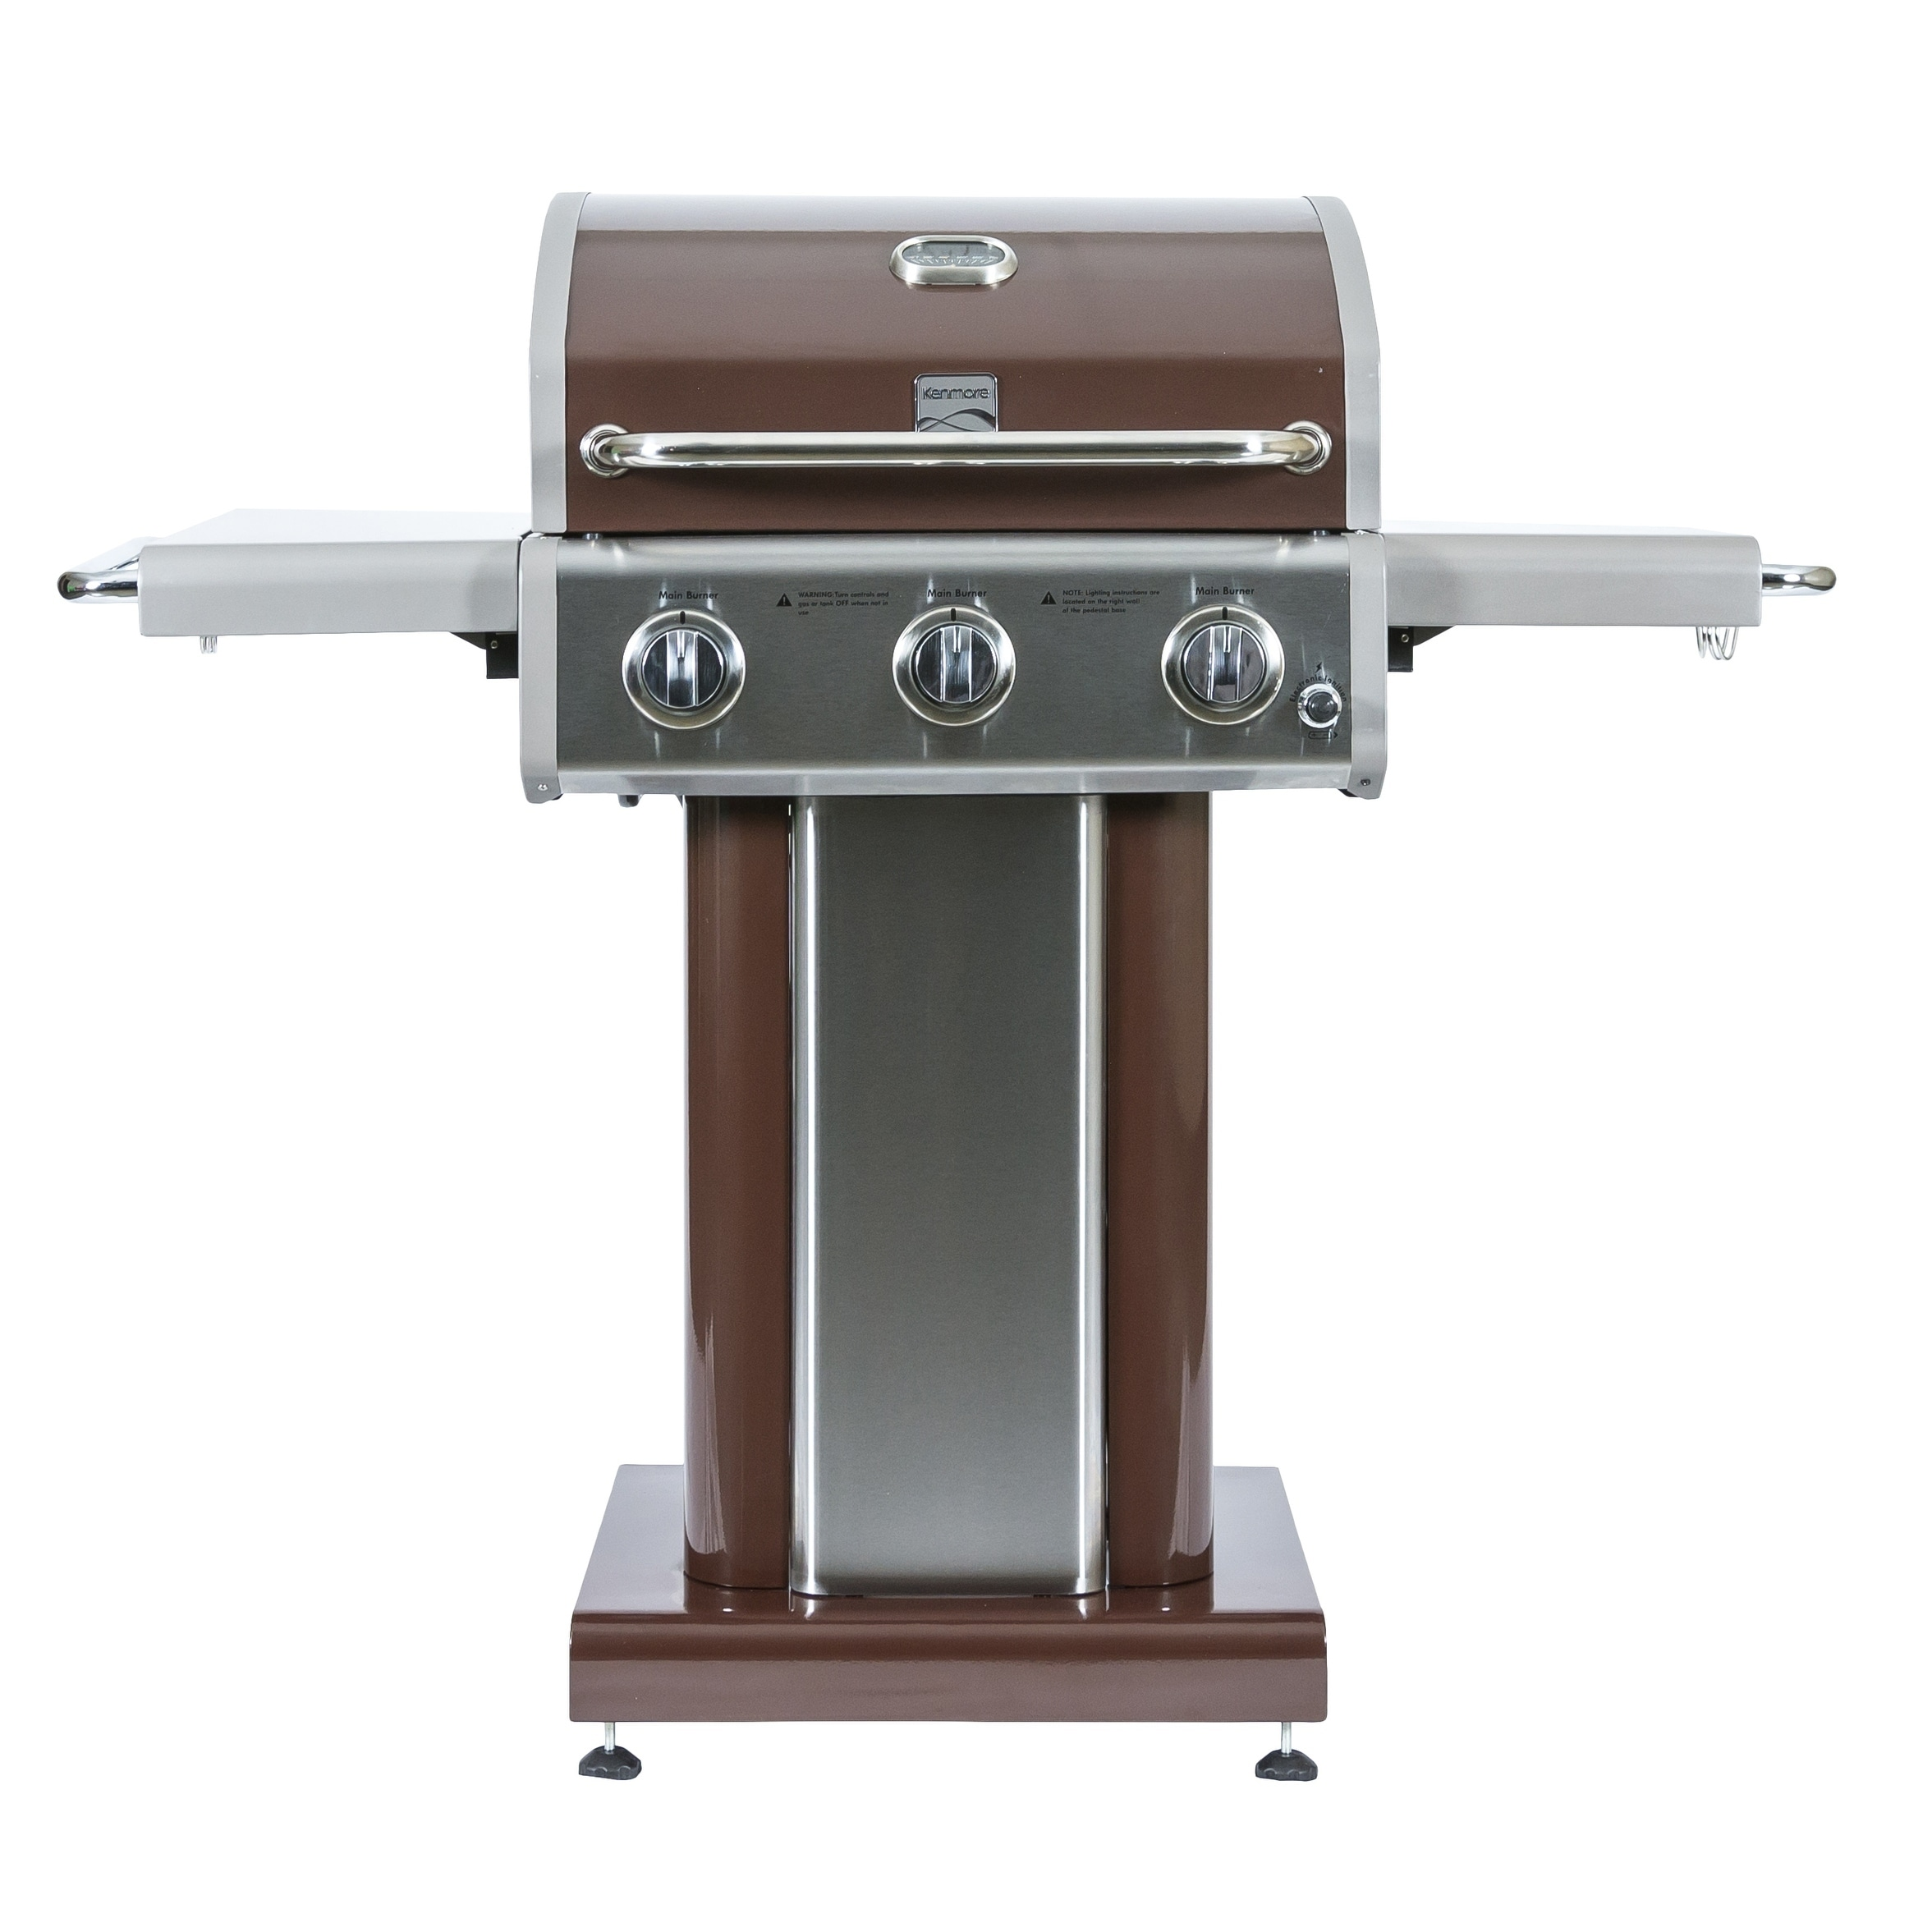 lux pedestal grills products technical series grill our specifications